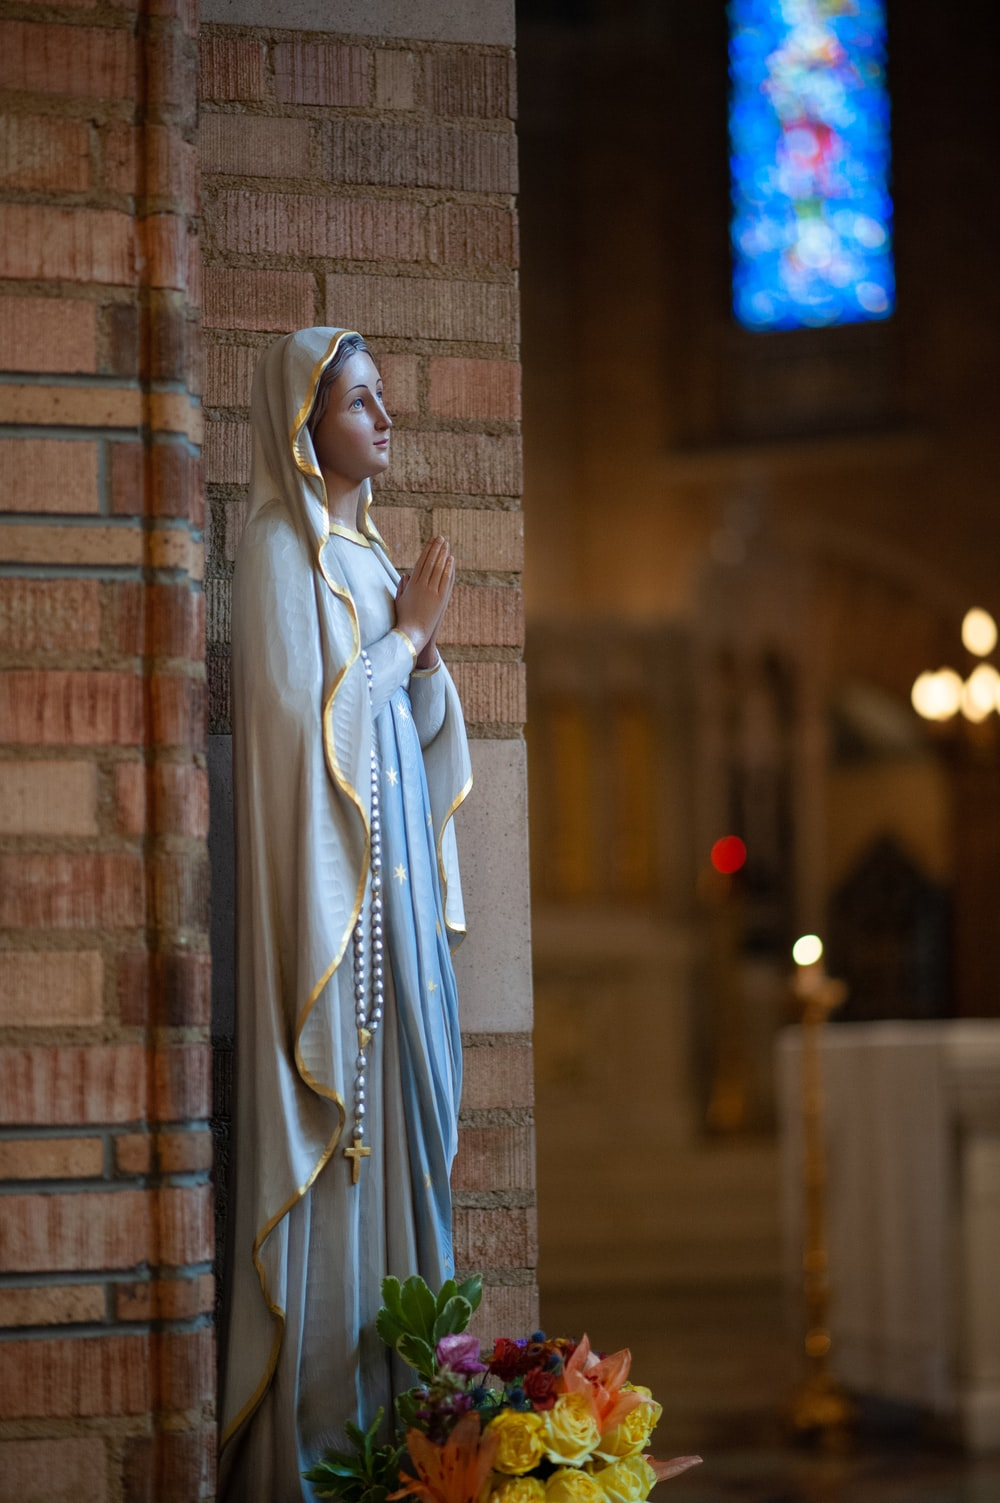 Mother Mary figurine in cathedral